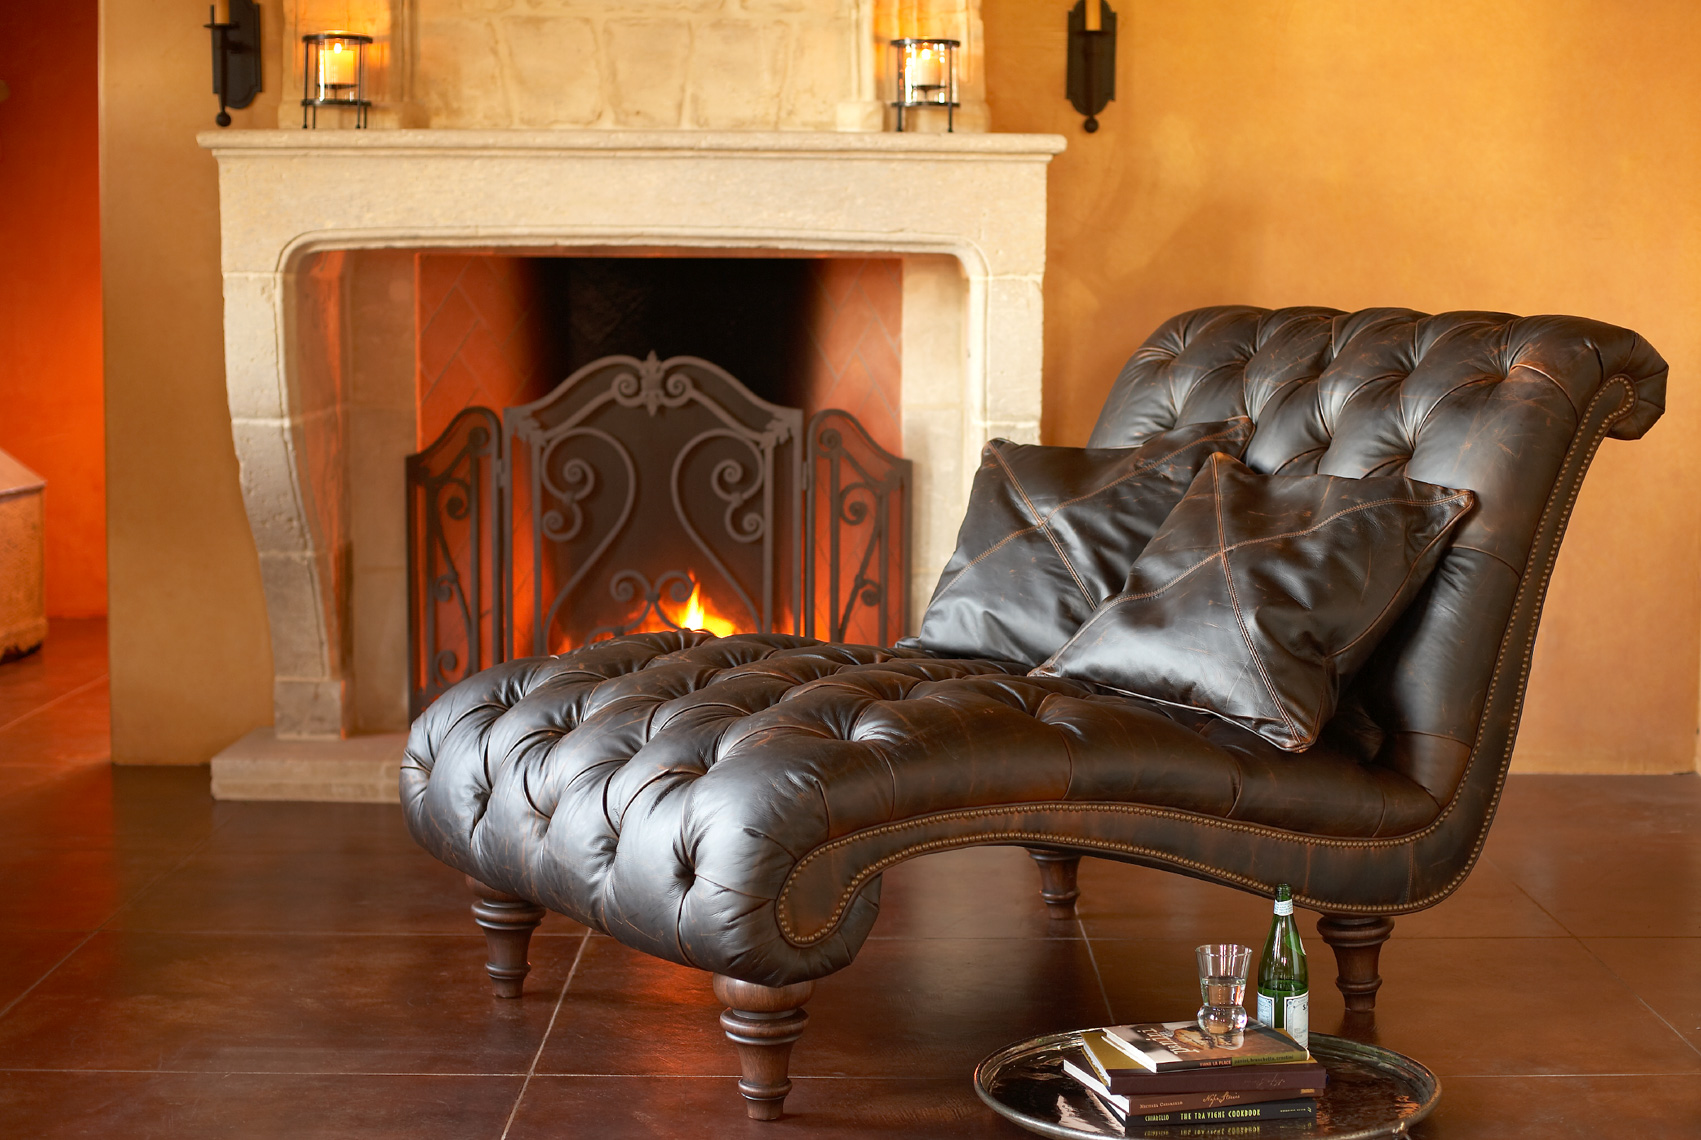 living room interior with brown leather chaise lounge sofa and white fireplace San Francisco interior photographer